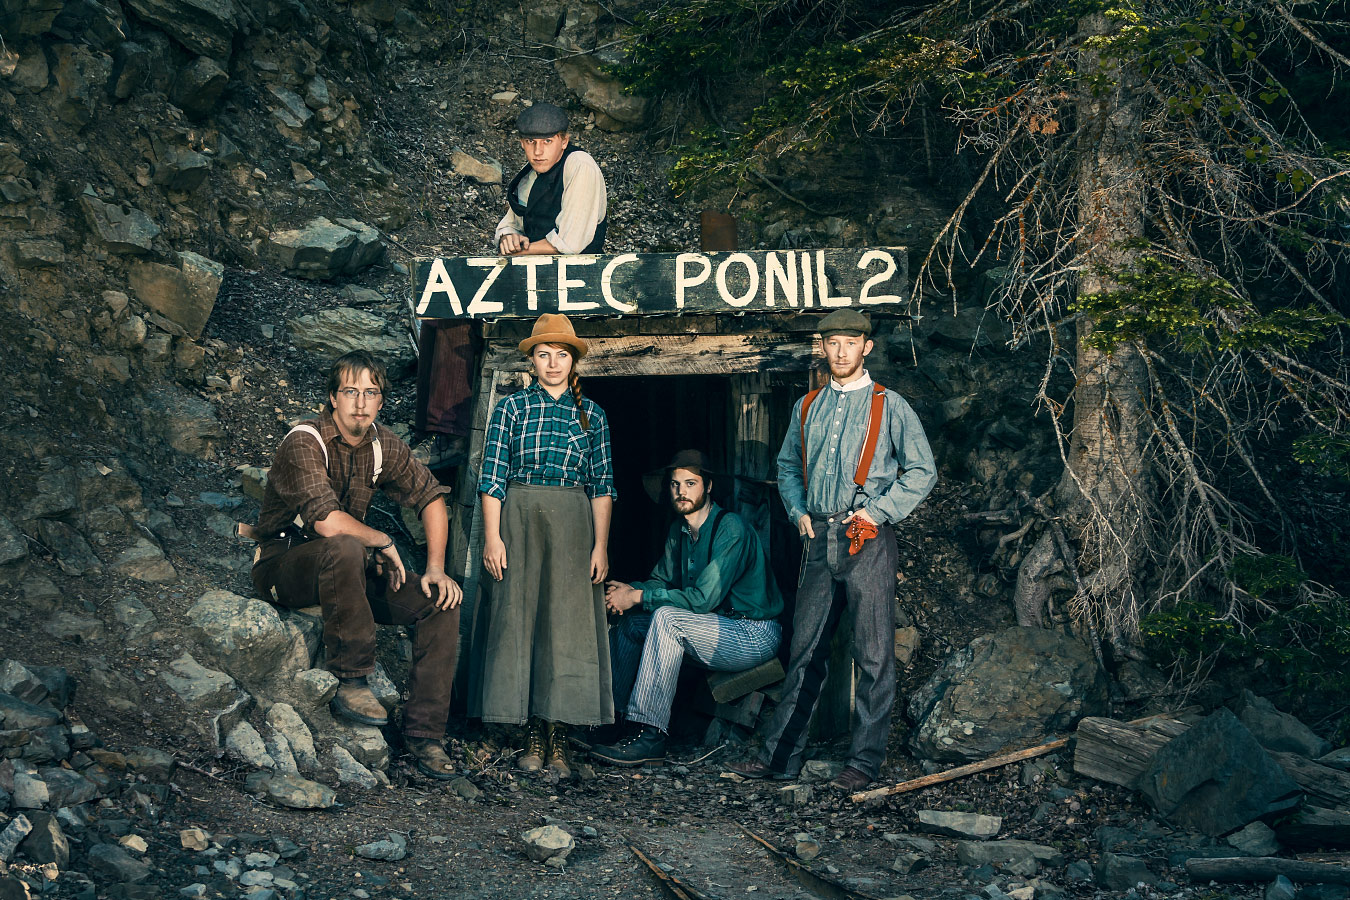 Aztec-Ponil Miners French Henry Philmont Scout Ranch Cimarron New Mexico